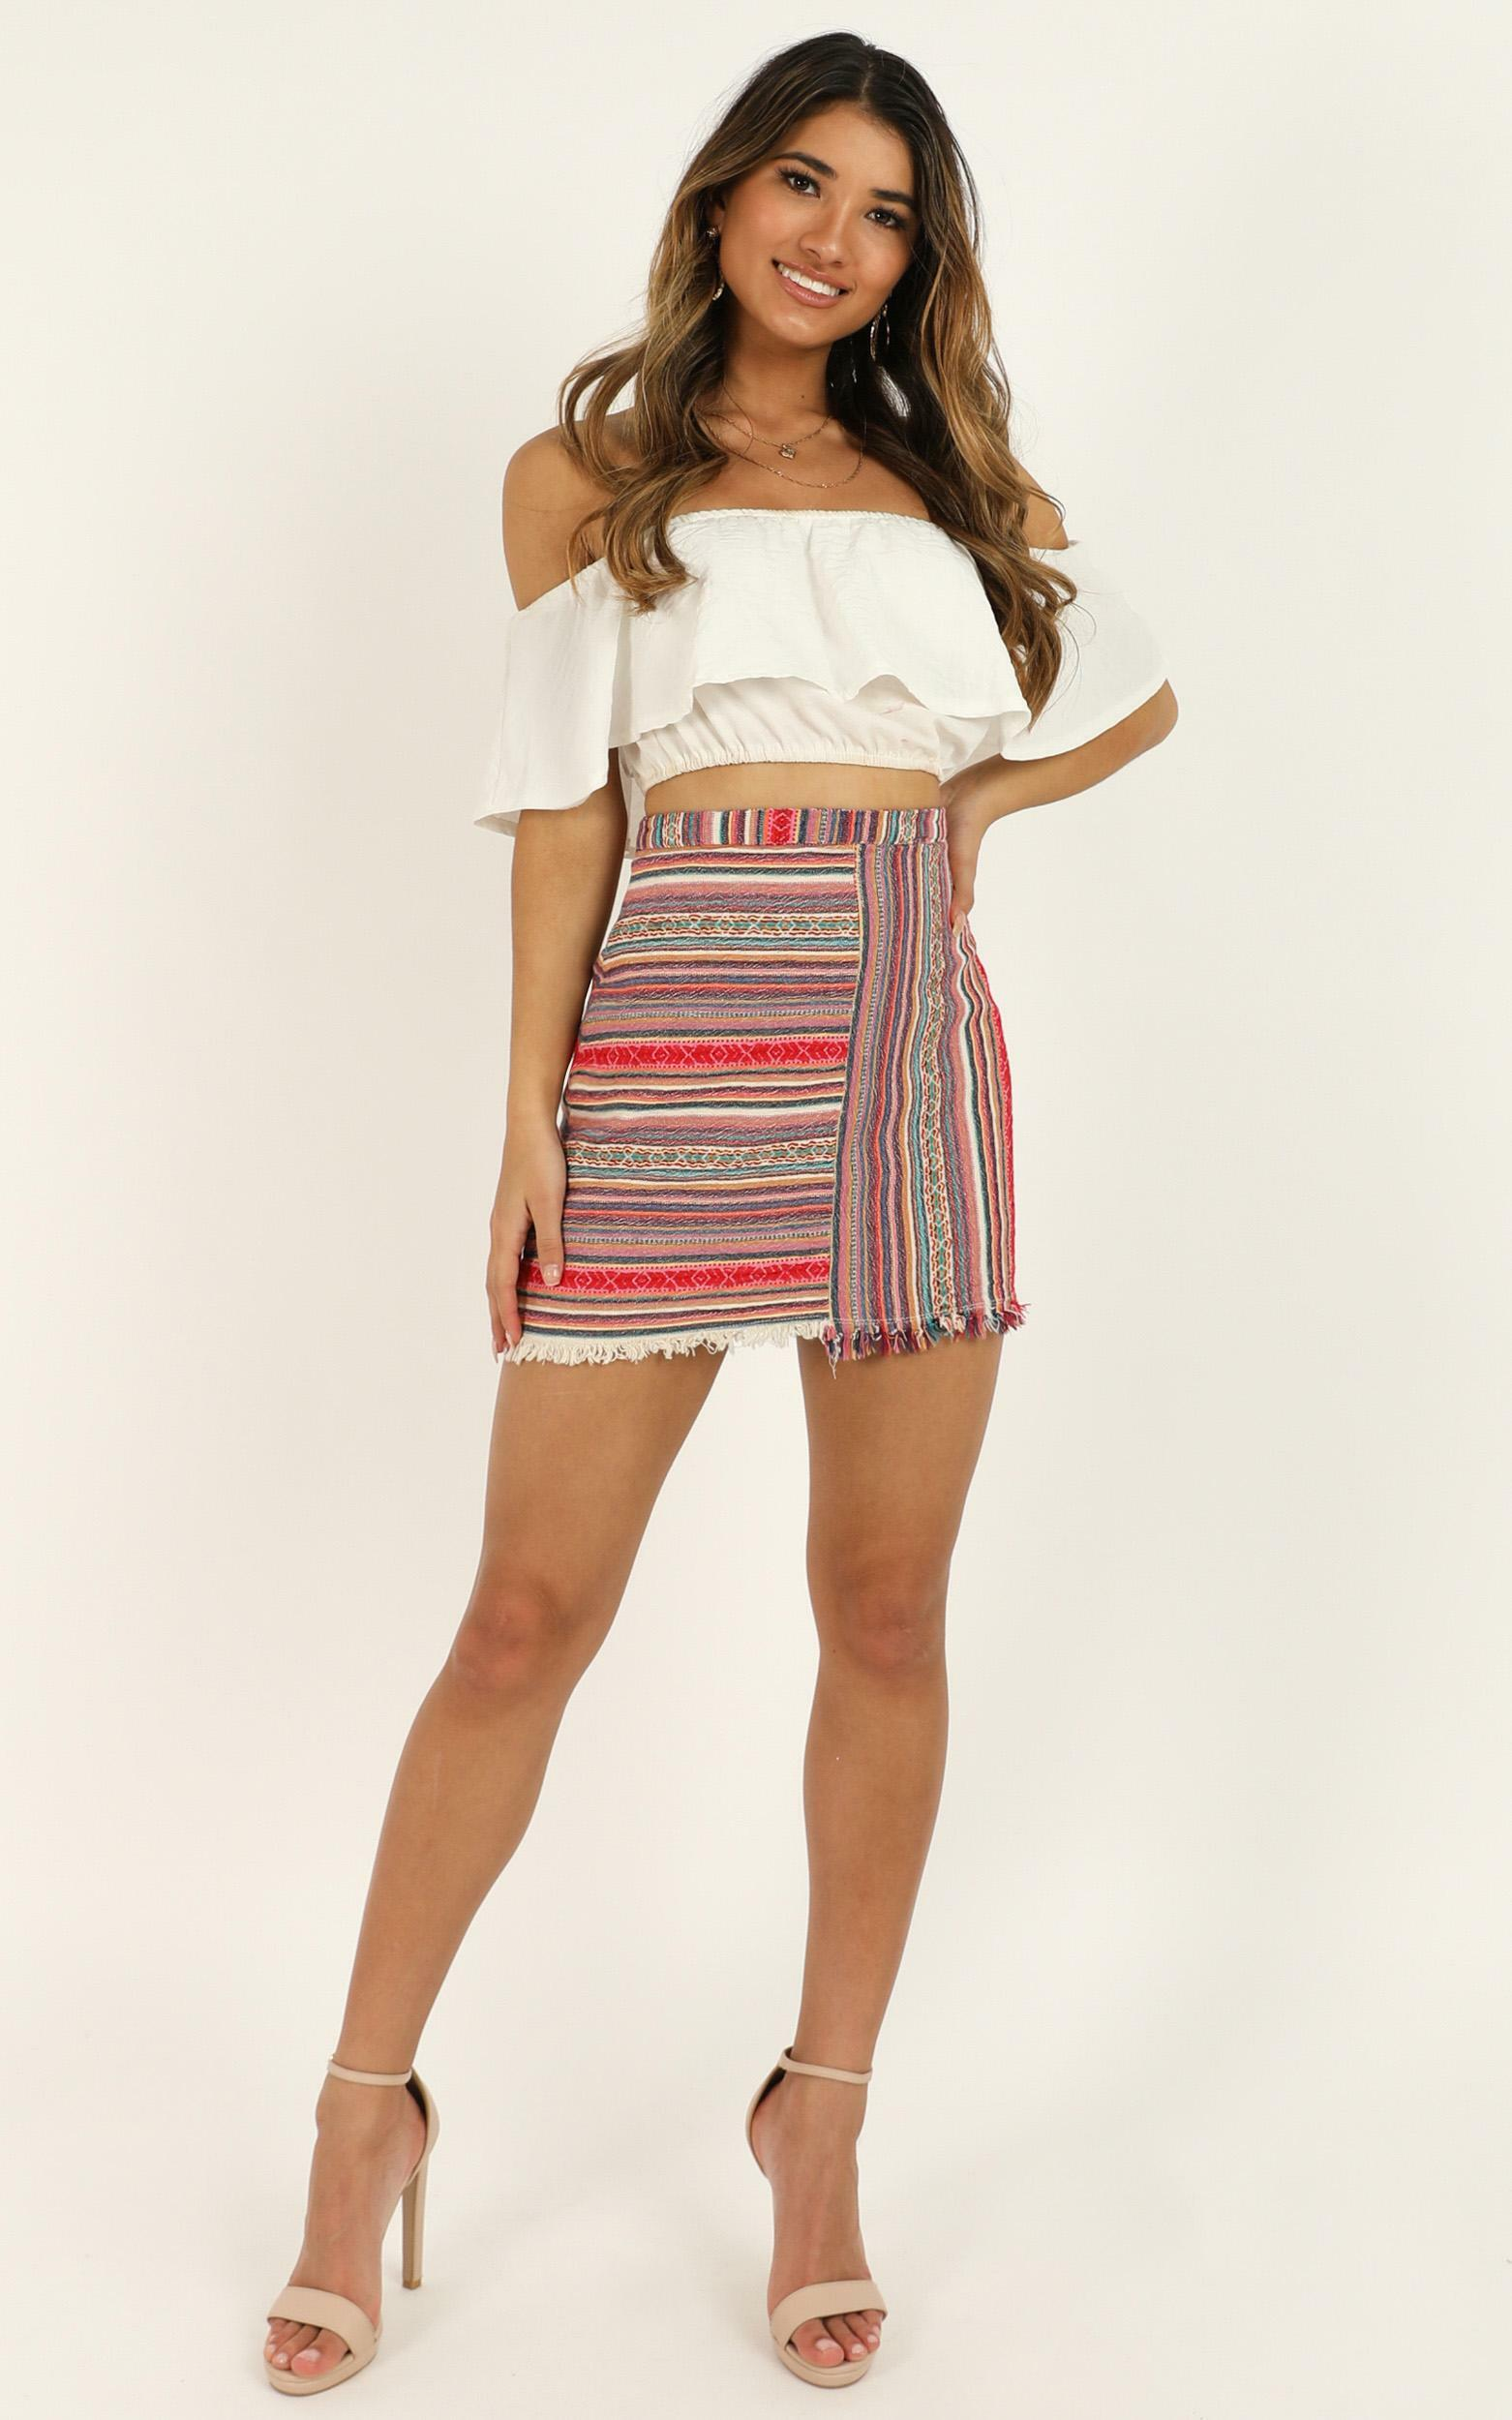 Spice Your Life Skirt In Pink Print - 4 (XXS), Pink, hi-res image number null